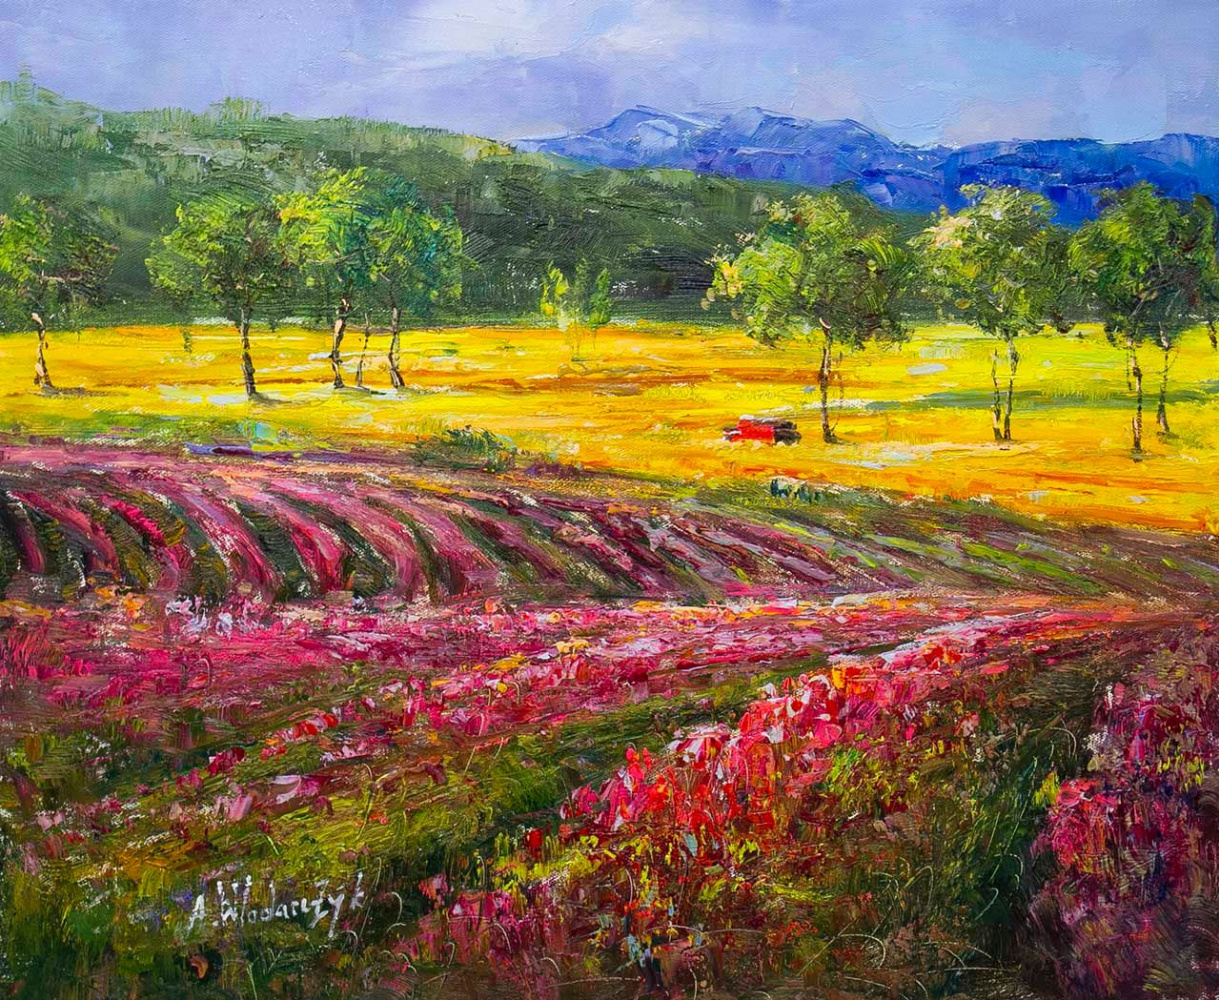 Andrzej Vlodarczyk. Blooming fields of Provence